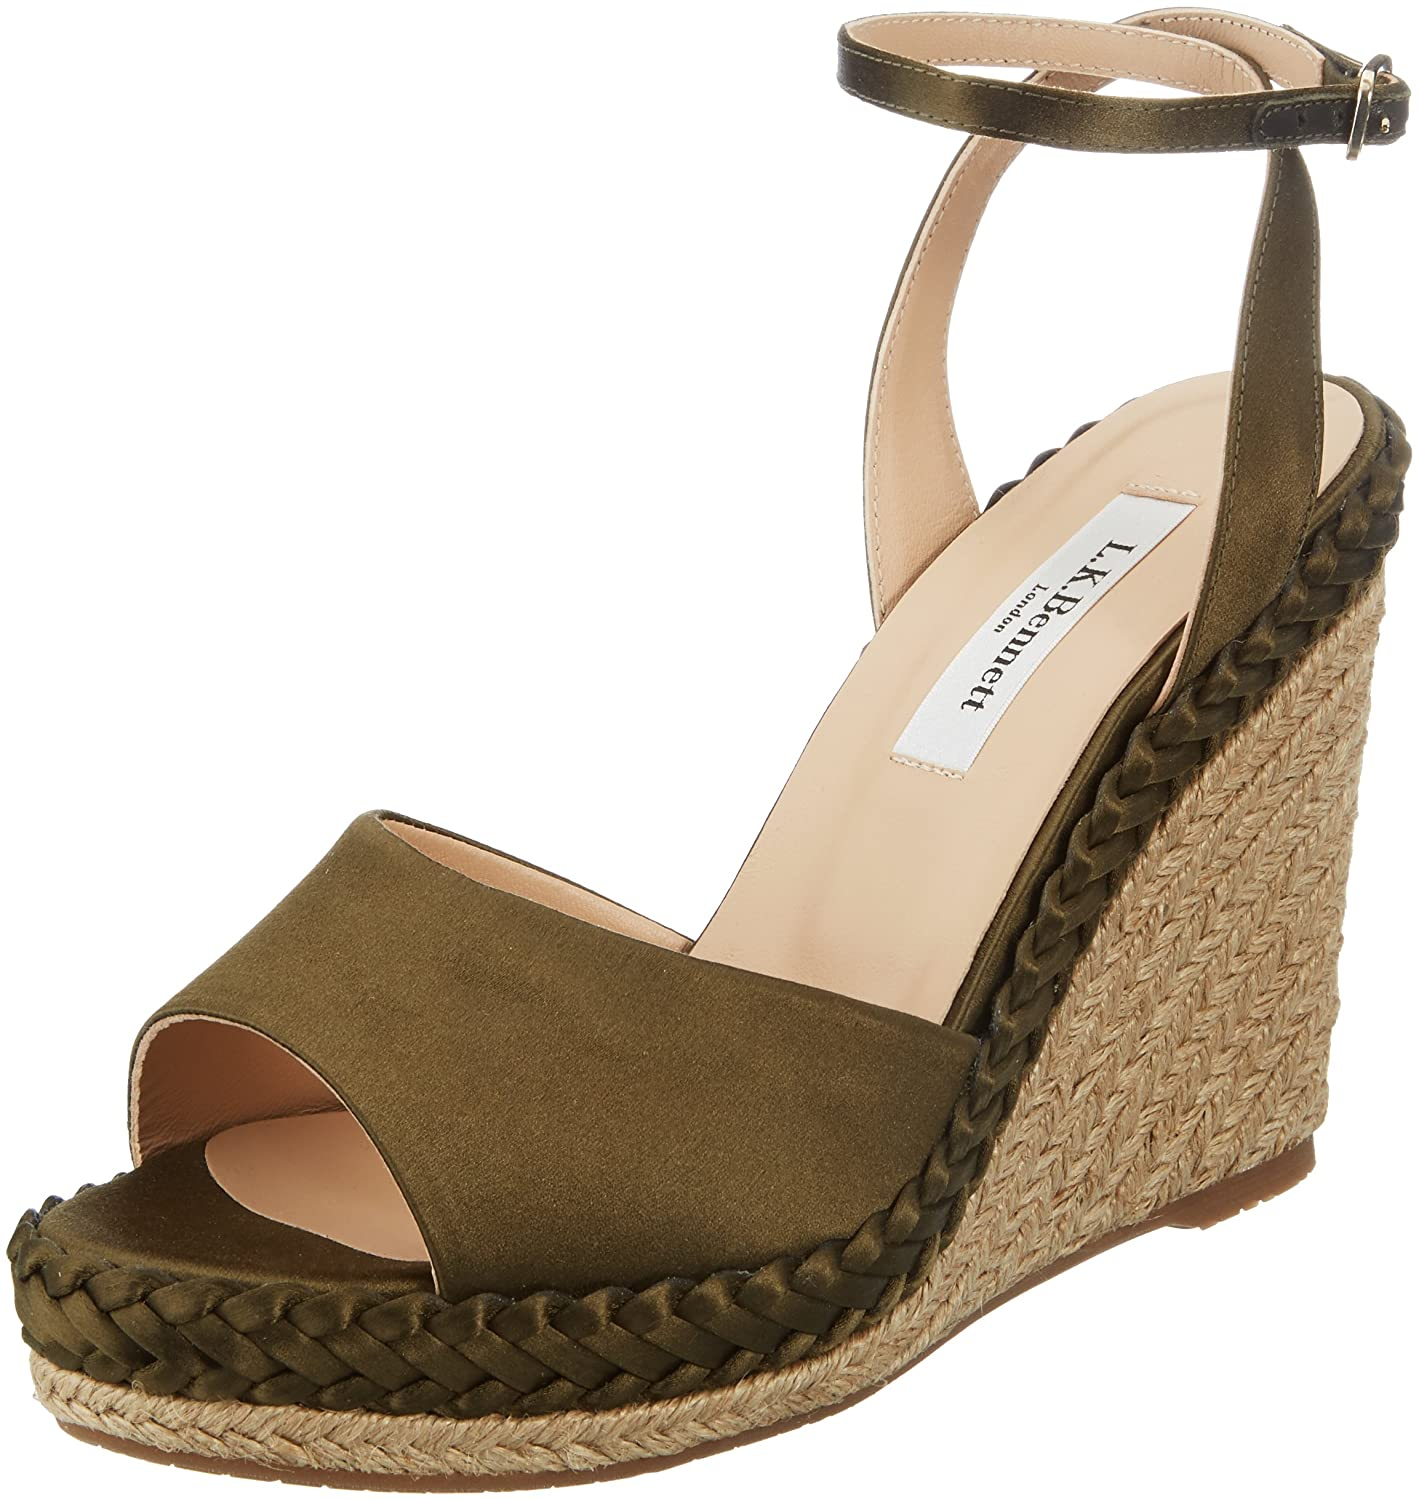 LK Daisie, BENNETT 308) Daisie, Sandales Bout Ouvert Ouvert Femme Vert (Khaki 308) b53760a - therethere.space